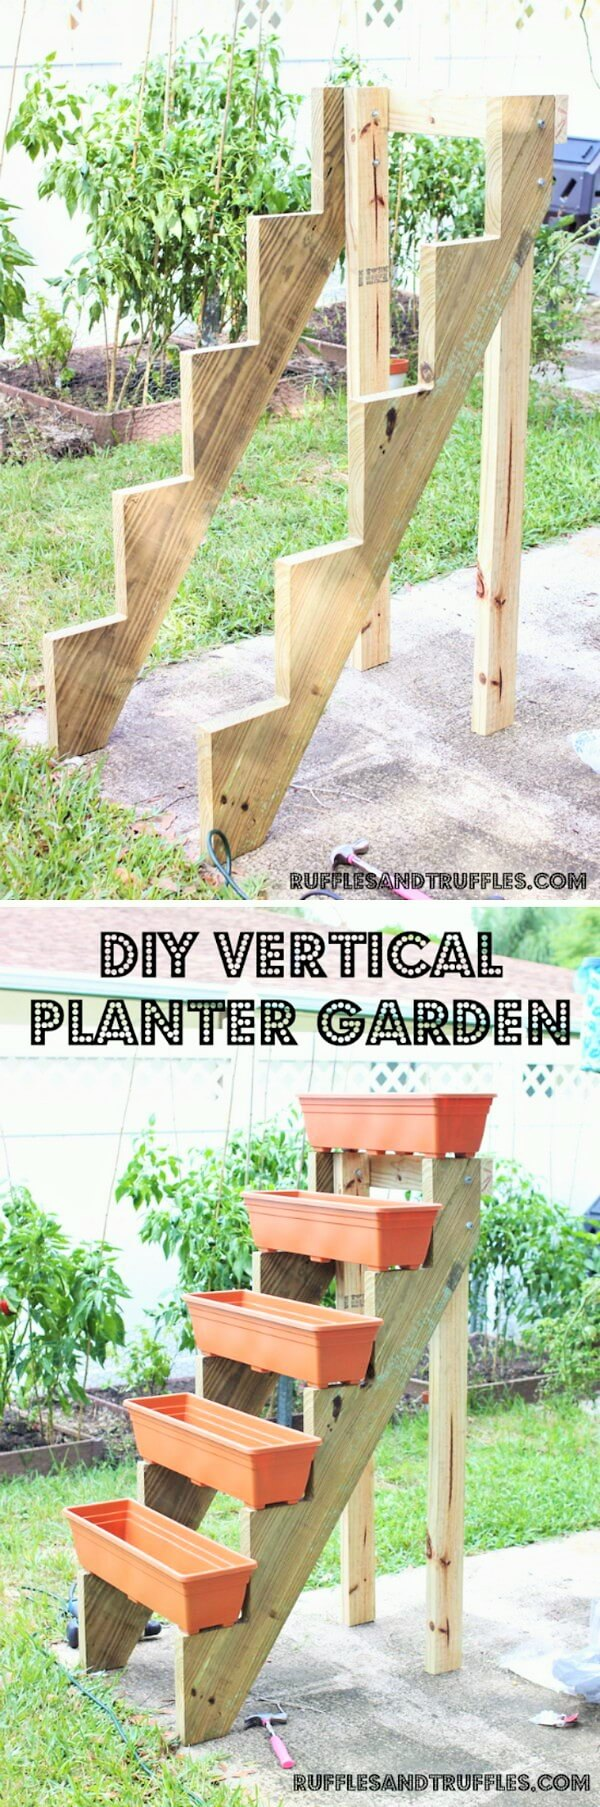 DIY-vertical-garden-ideas-9